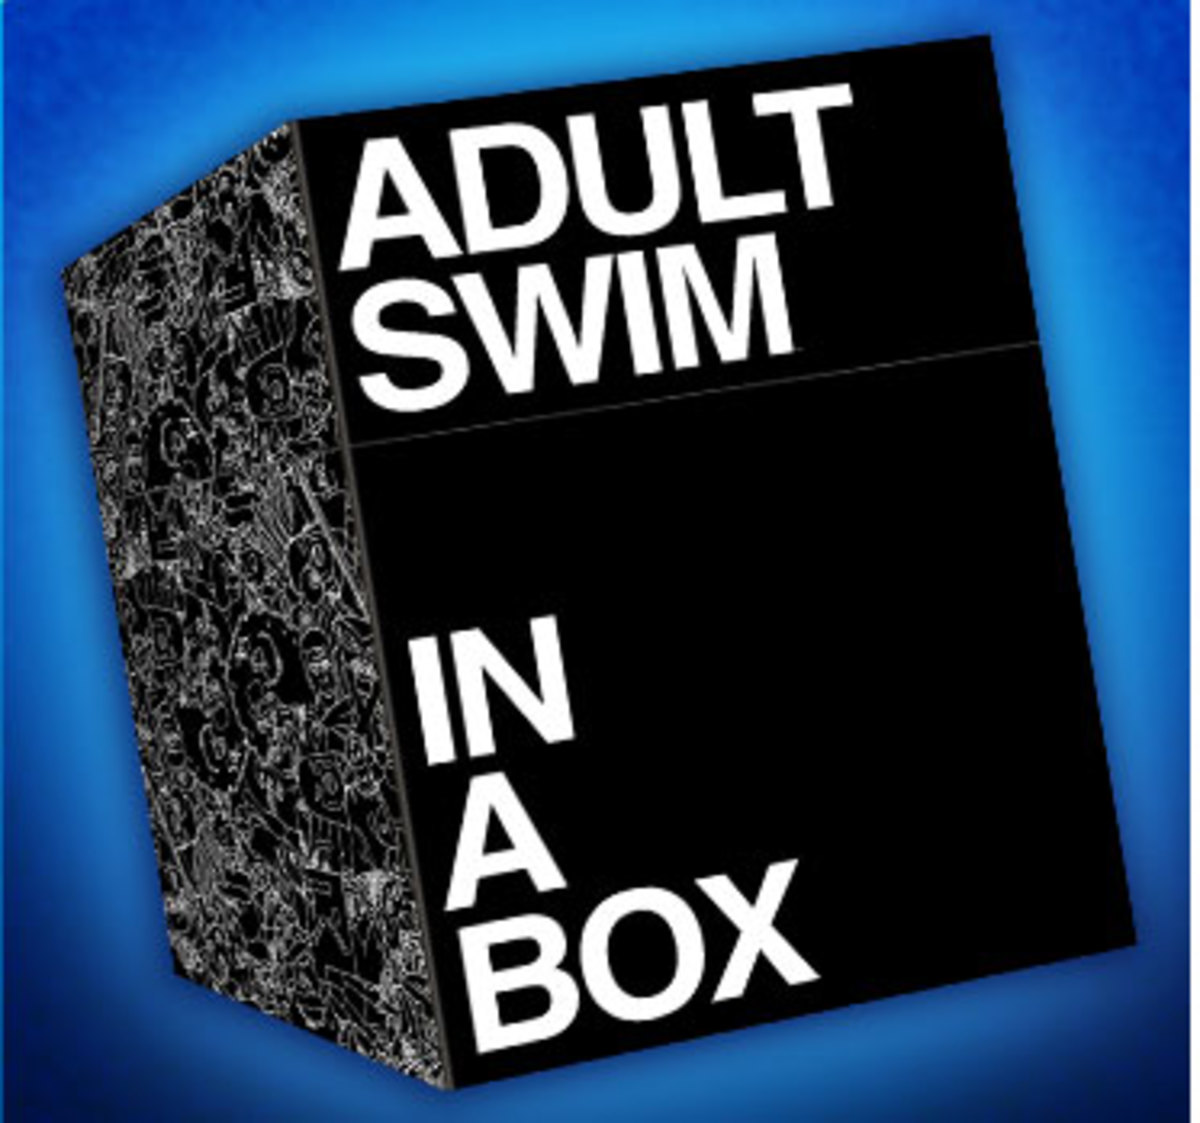 adult_swim_in_a_box_1